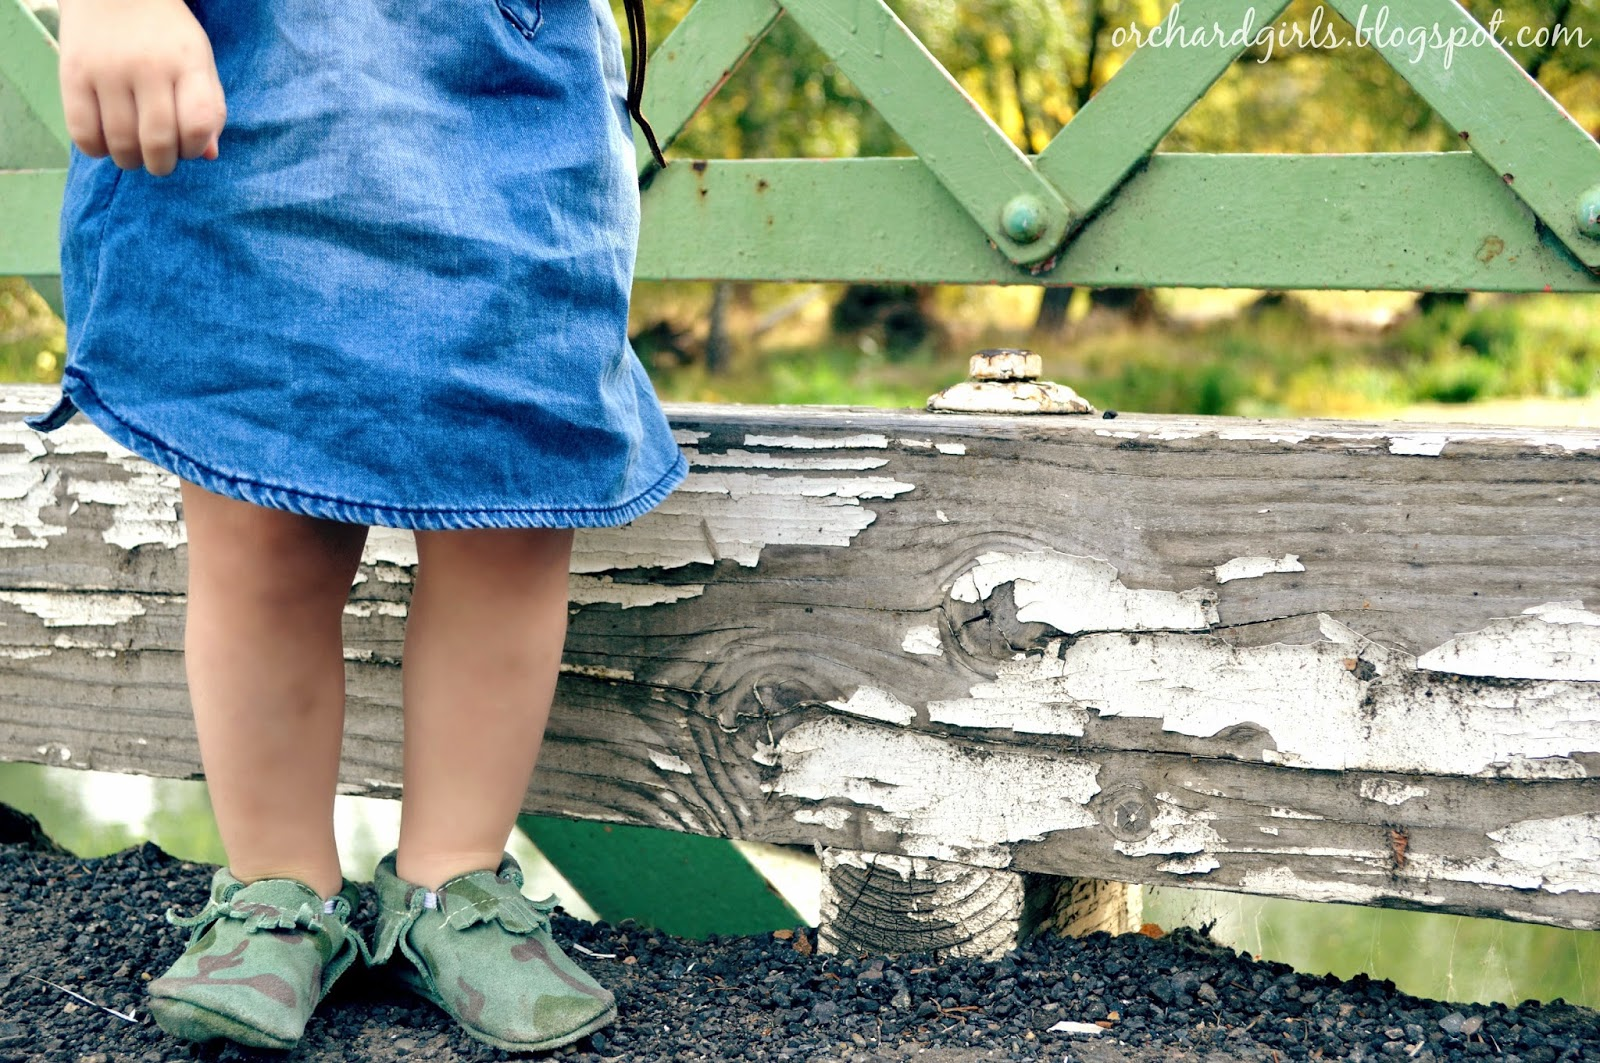 Freshly Picked Moccasin Review and Giveaway from Orchard Girls